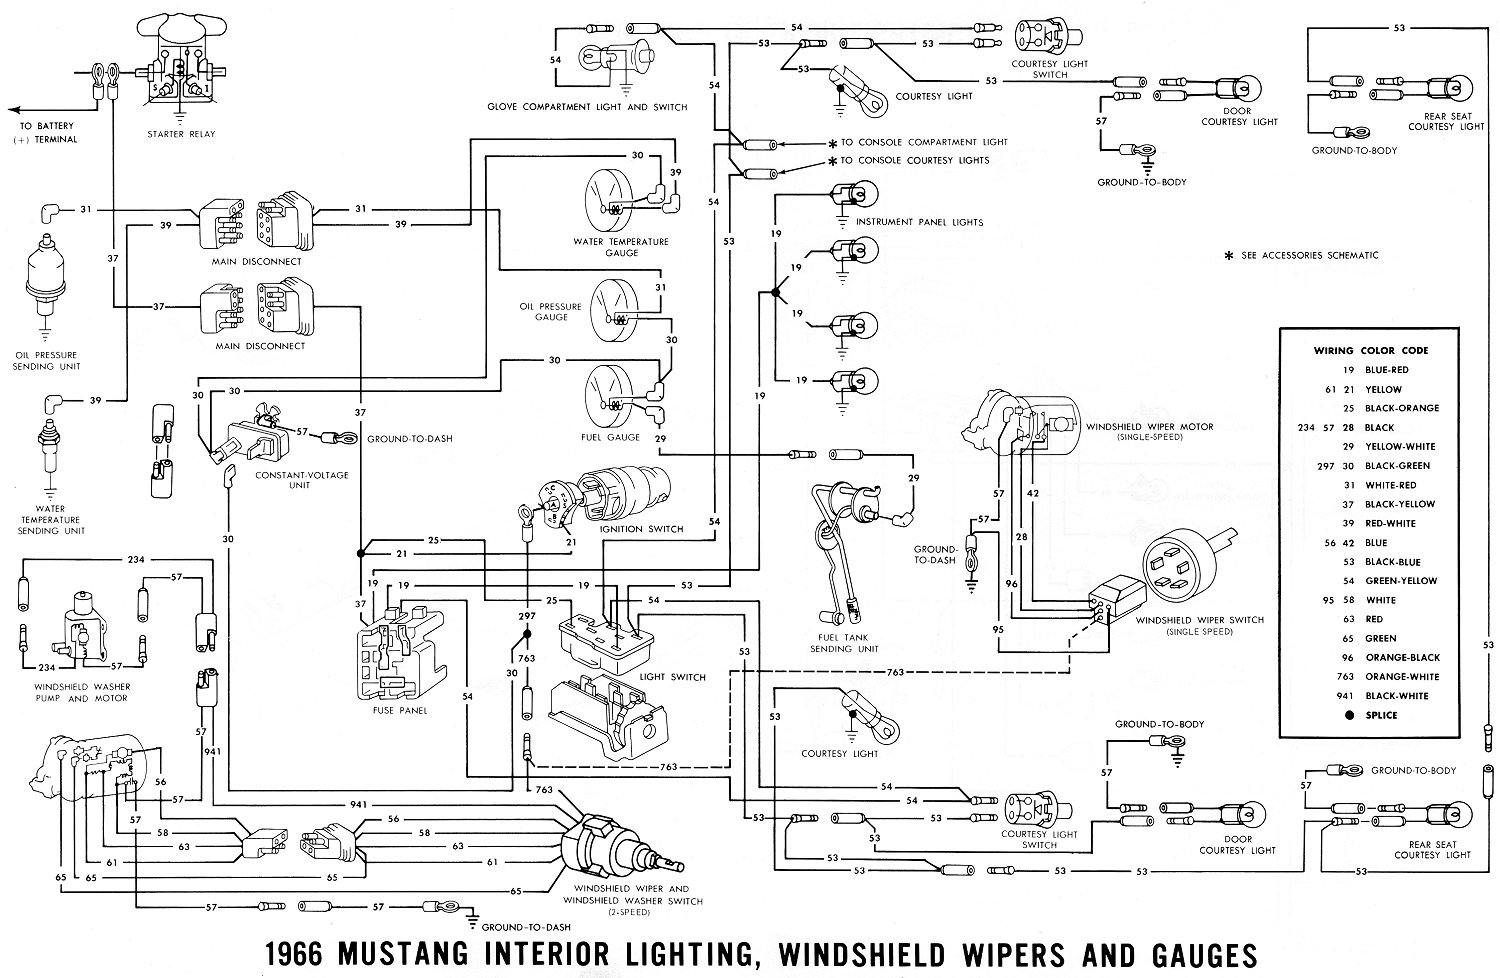 66 mustang wiring diagram wipers switch car wiring diagrams rh justinmyers co 1967 Mustang Fog Lights Diagram 66 Mustang Ignition Switch Wiring Diagram